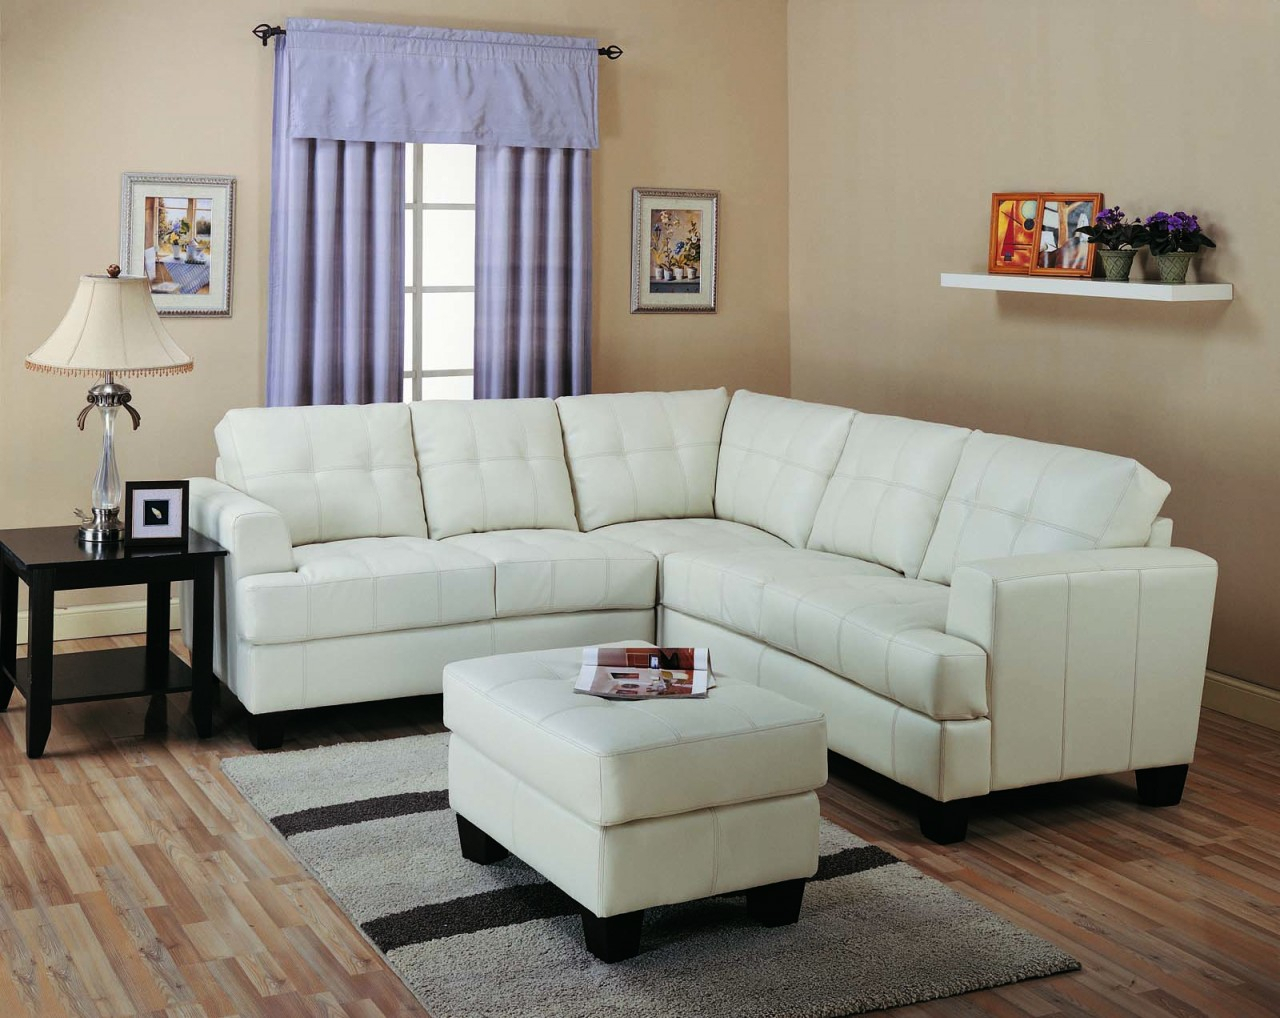 Types Of Best Small Sectional Couches For Small Living With Regard To Small Sofas And Chairs (View 9 of 15)